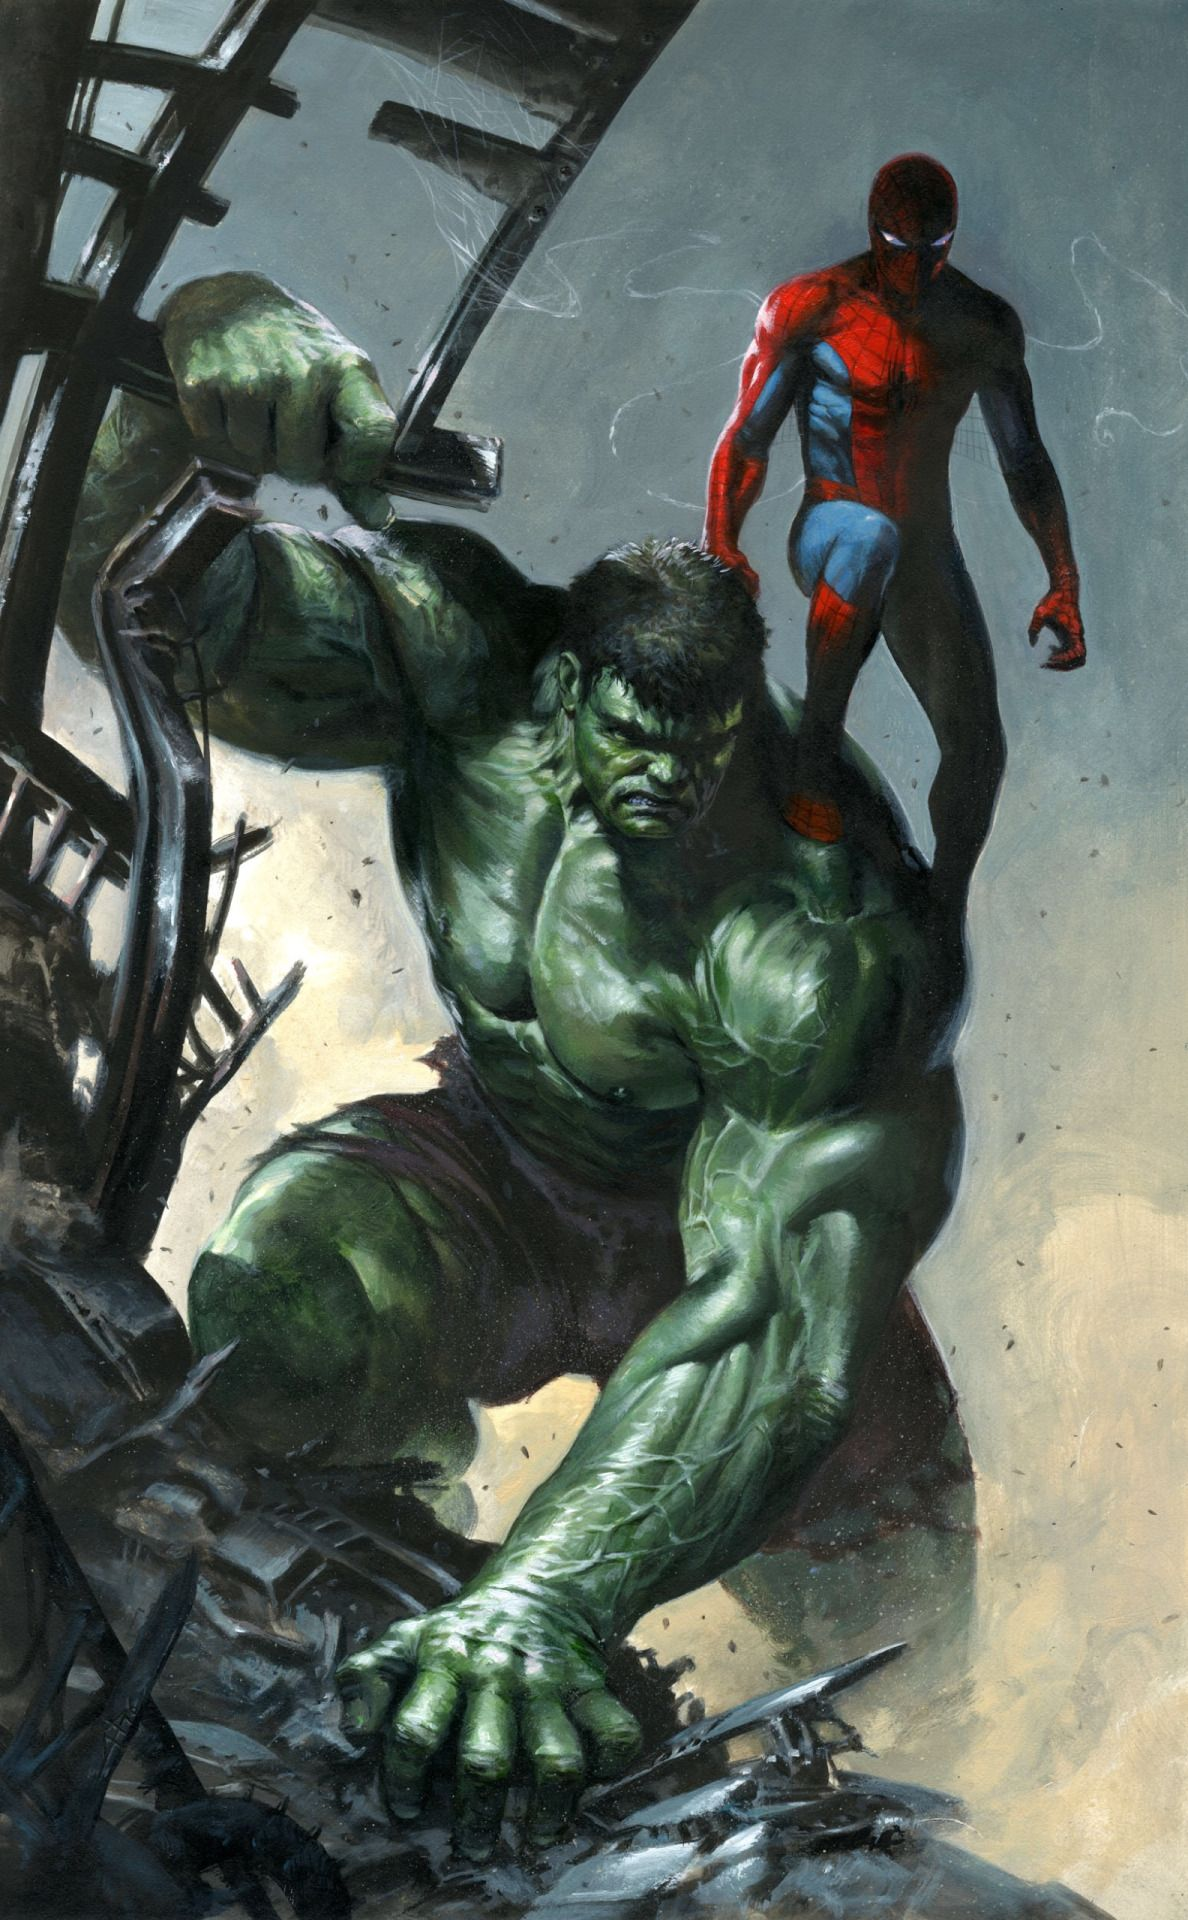 Hulk & Spider-Man byGabriele Dell'otto. - Living life one comic book at a time.